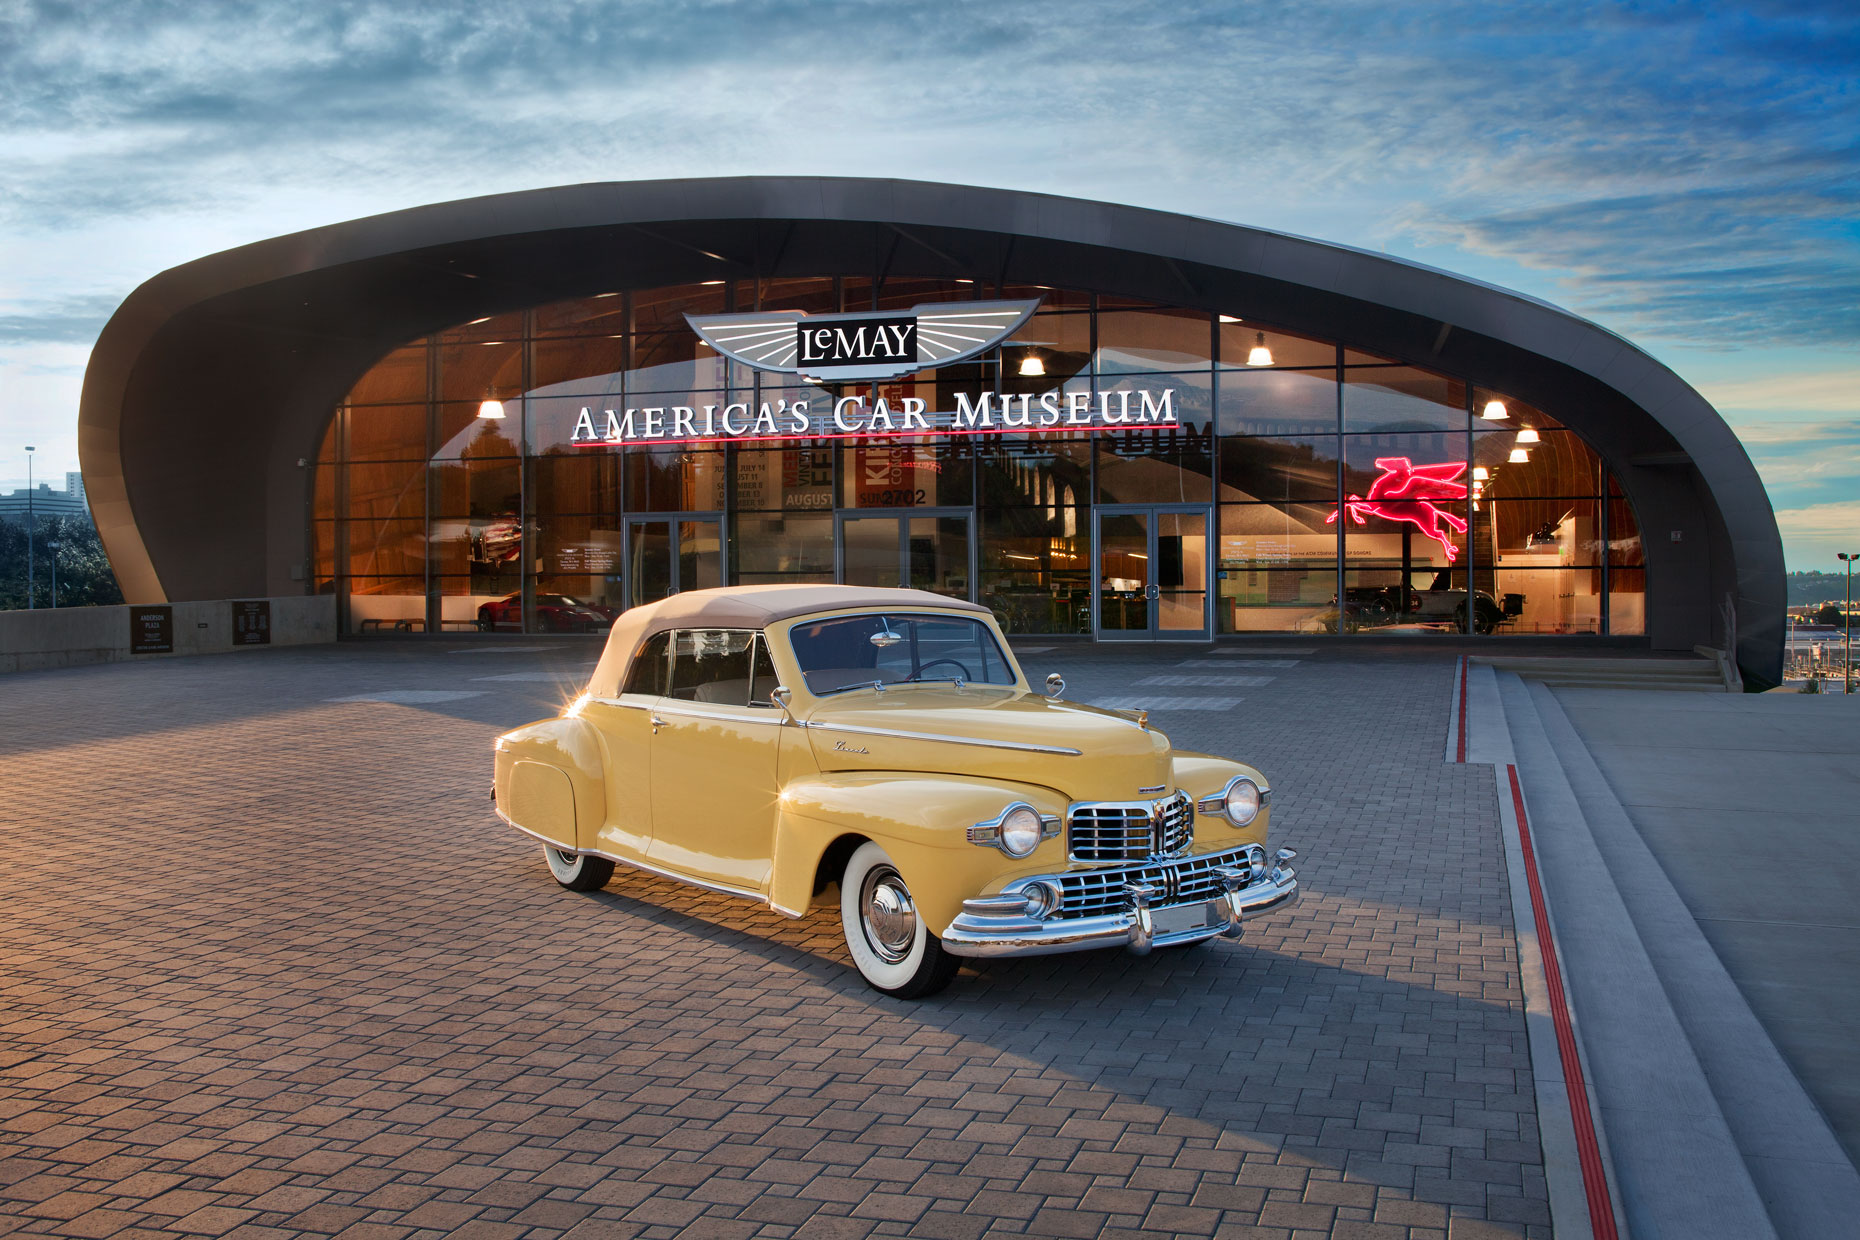 MCraft_LeMay_1947Lincoln_OnThePlaza